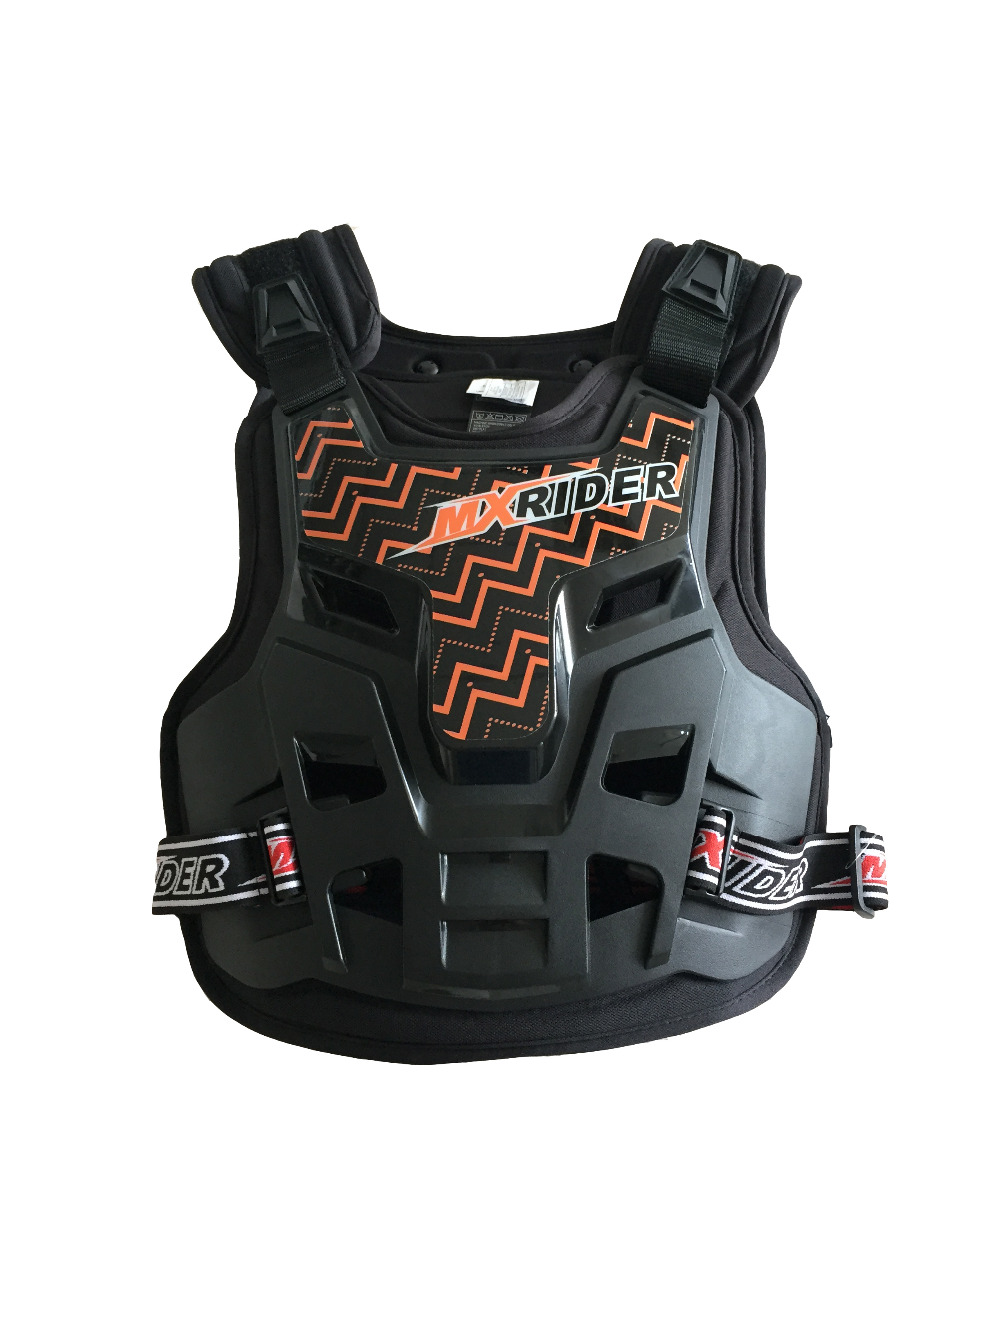 Motorcycles Motocross Chest Back Protector Armour Vest Racing Protective Body-Guard MX armor ATV Guards Race armor guard herobiker motorcycle jacket body armor motocross protective gear motocross off road racing vest moto armor vest black and white